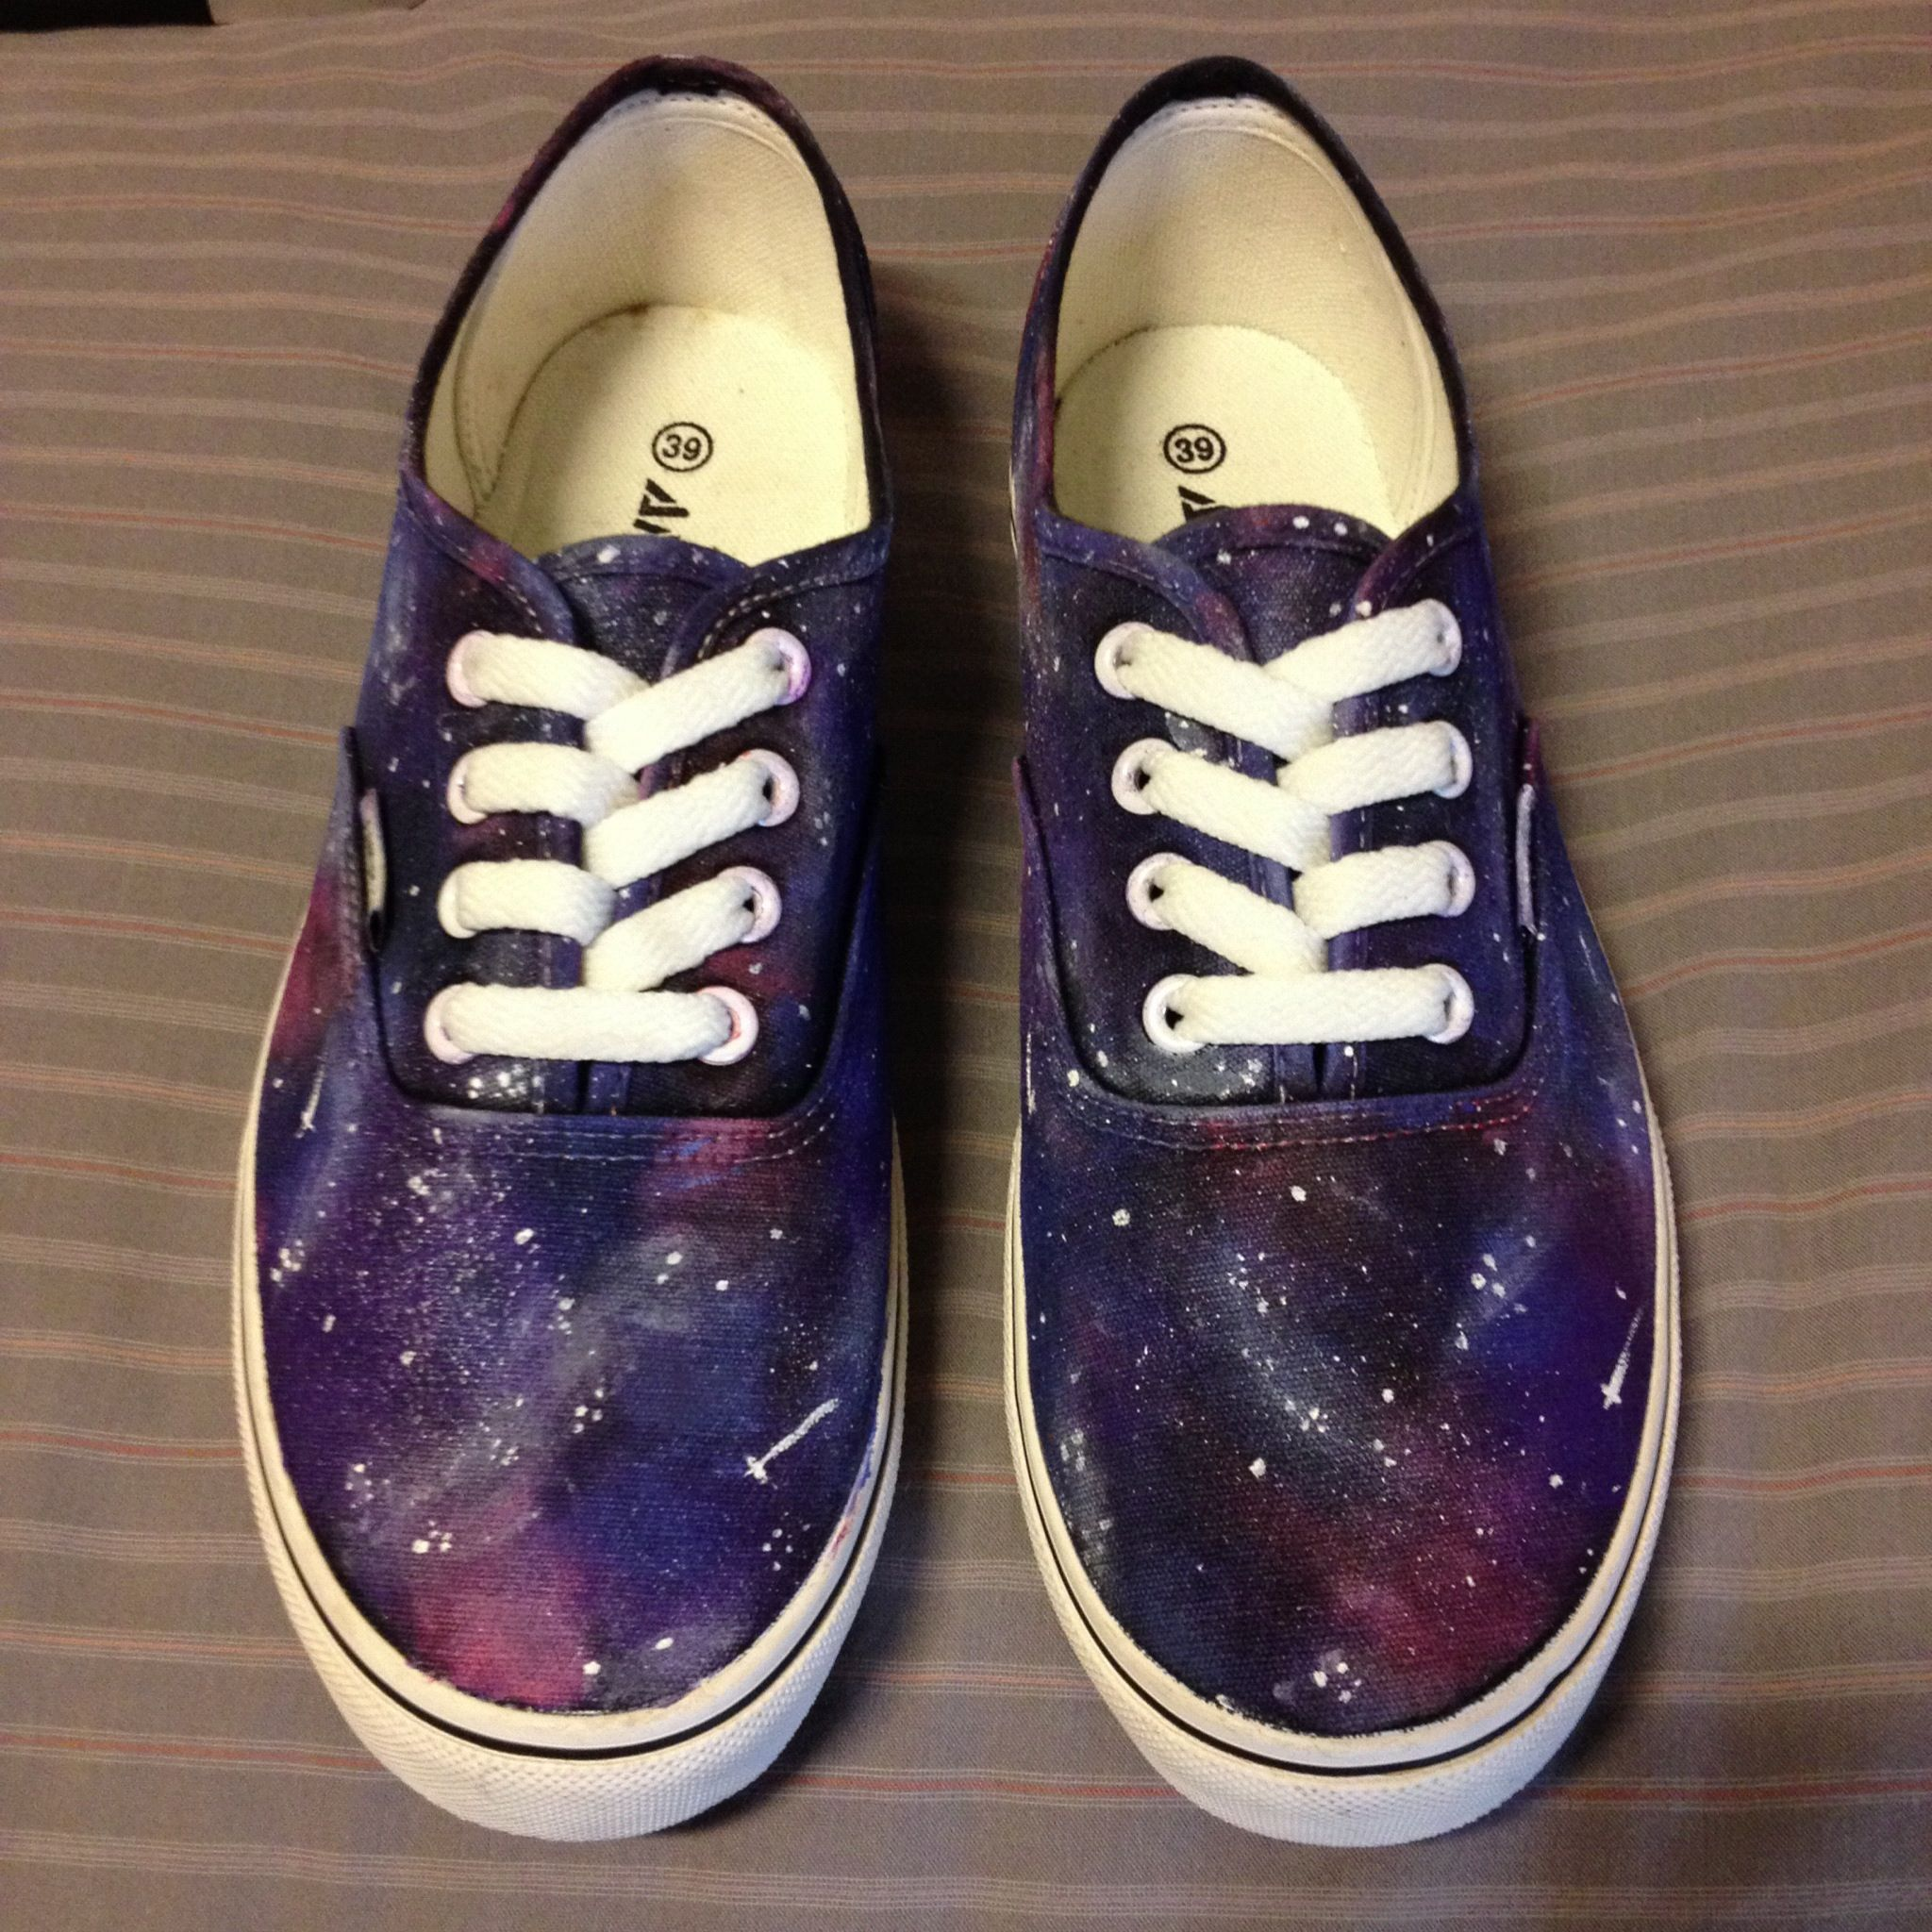 DIY galaxy shoes/ universe vans purple and pink!